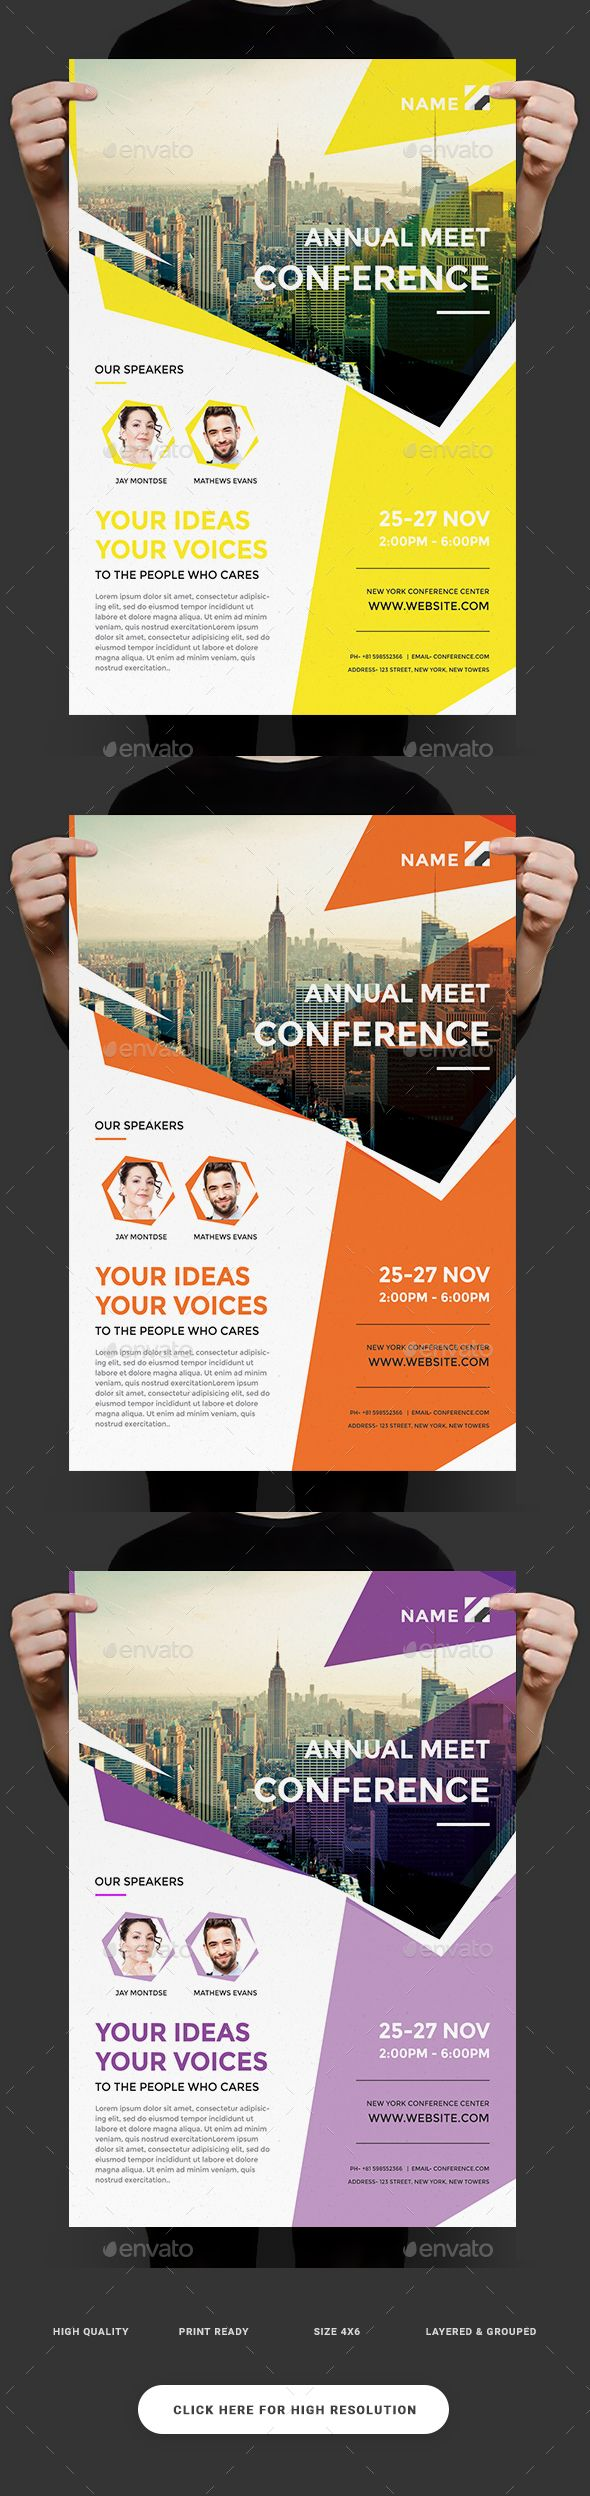 Poster design ideas pinterest - Event Summit Conference Flyer Event Invitation Designevent Poster